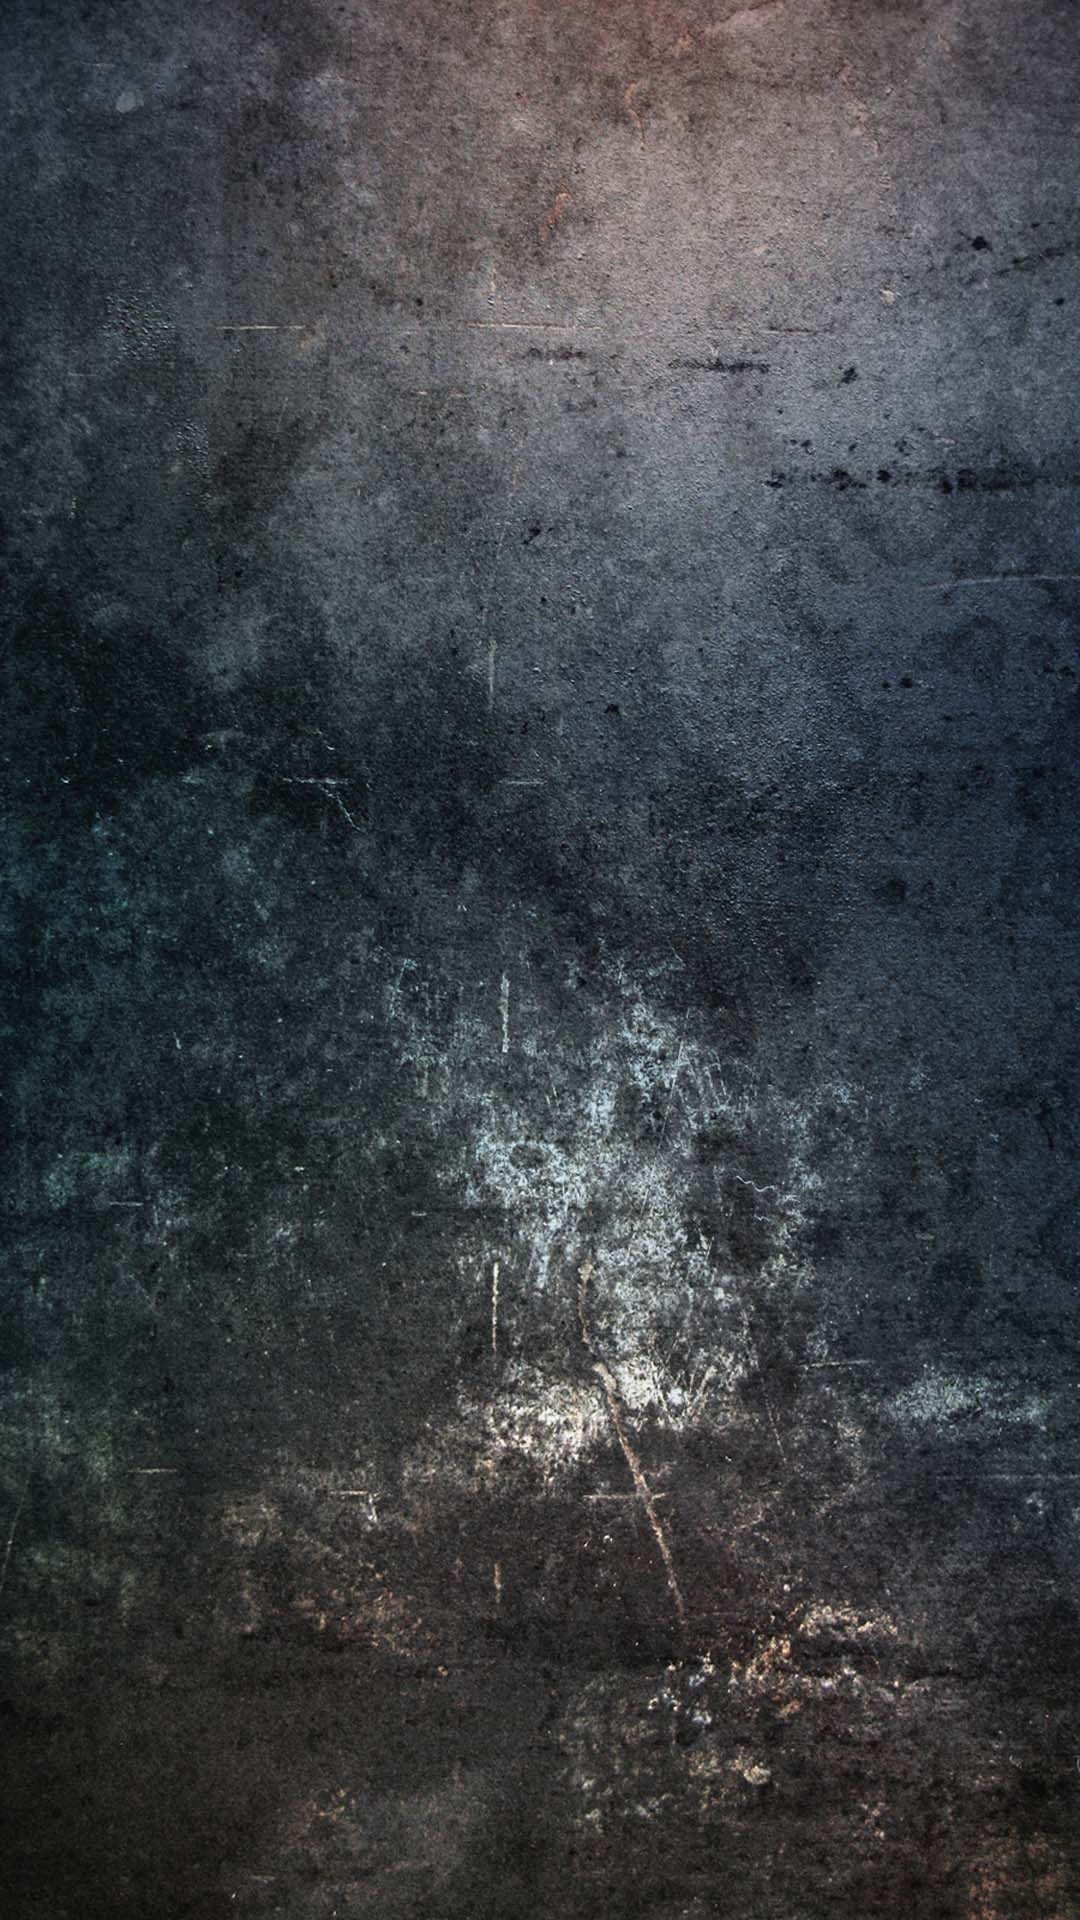 Grunge hd wallpaper for iphone